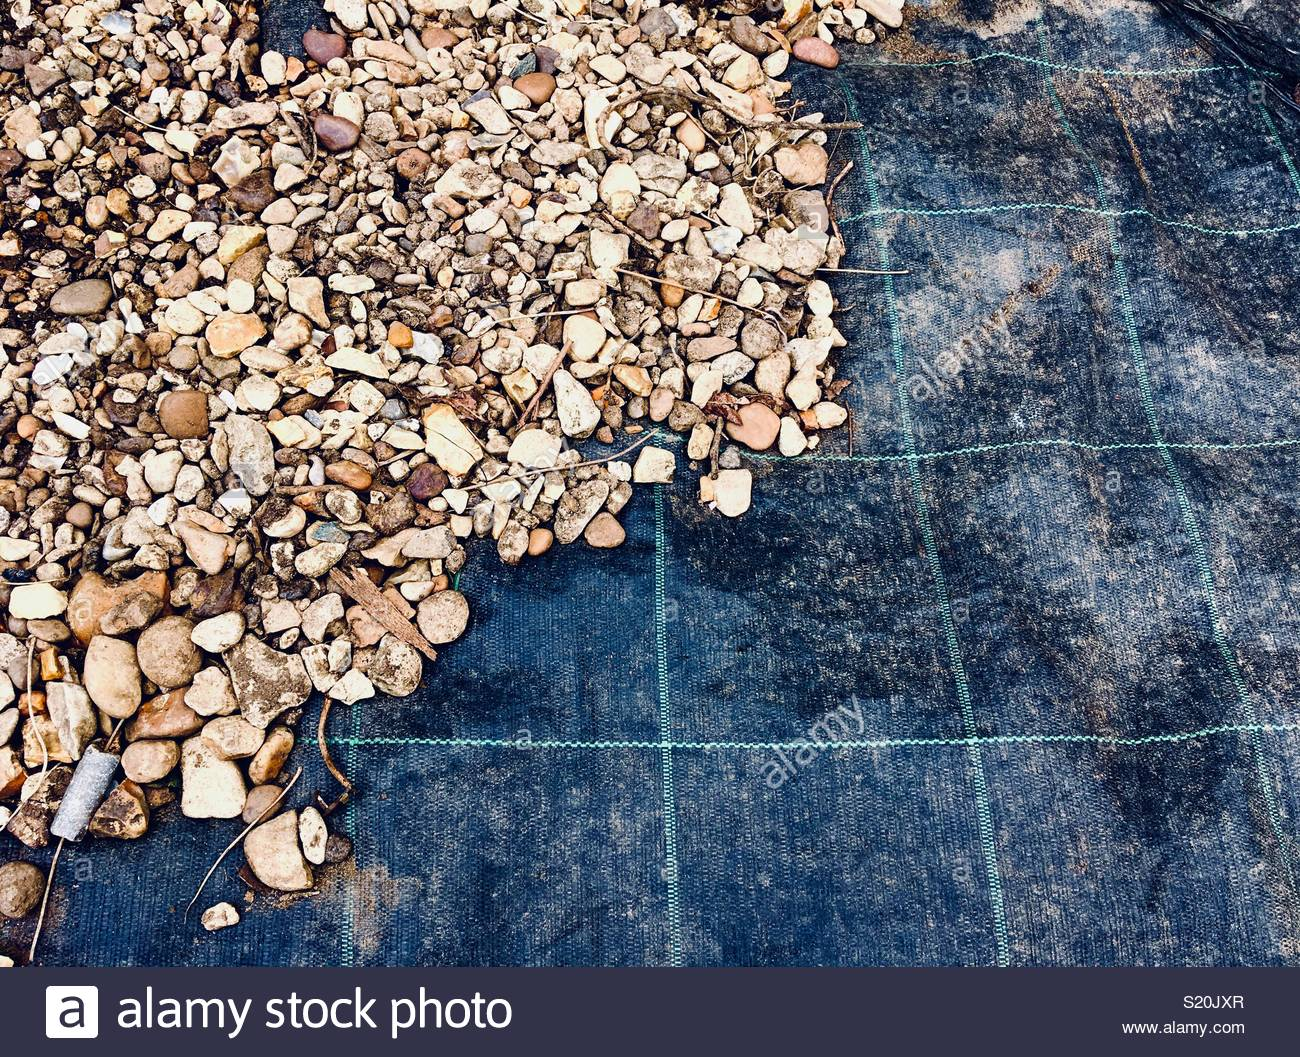 Weed control fabric with gravel on top - Stock Image